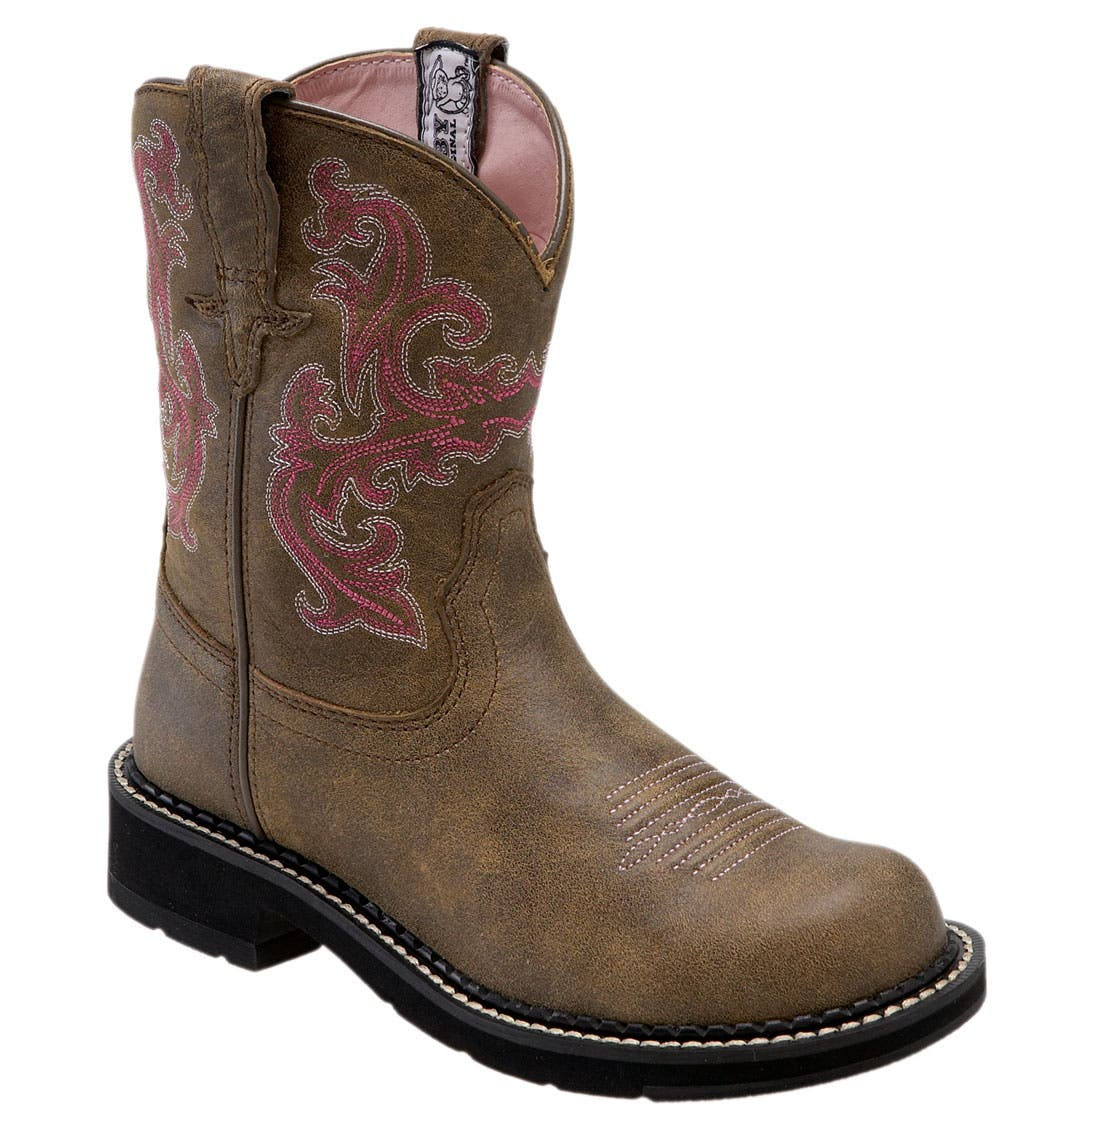 Main Image - Ariat 'Fatbaby II' Boot